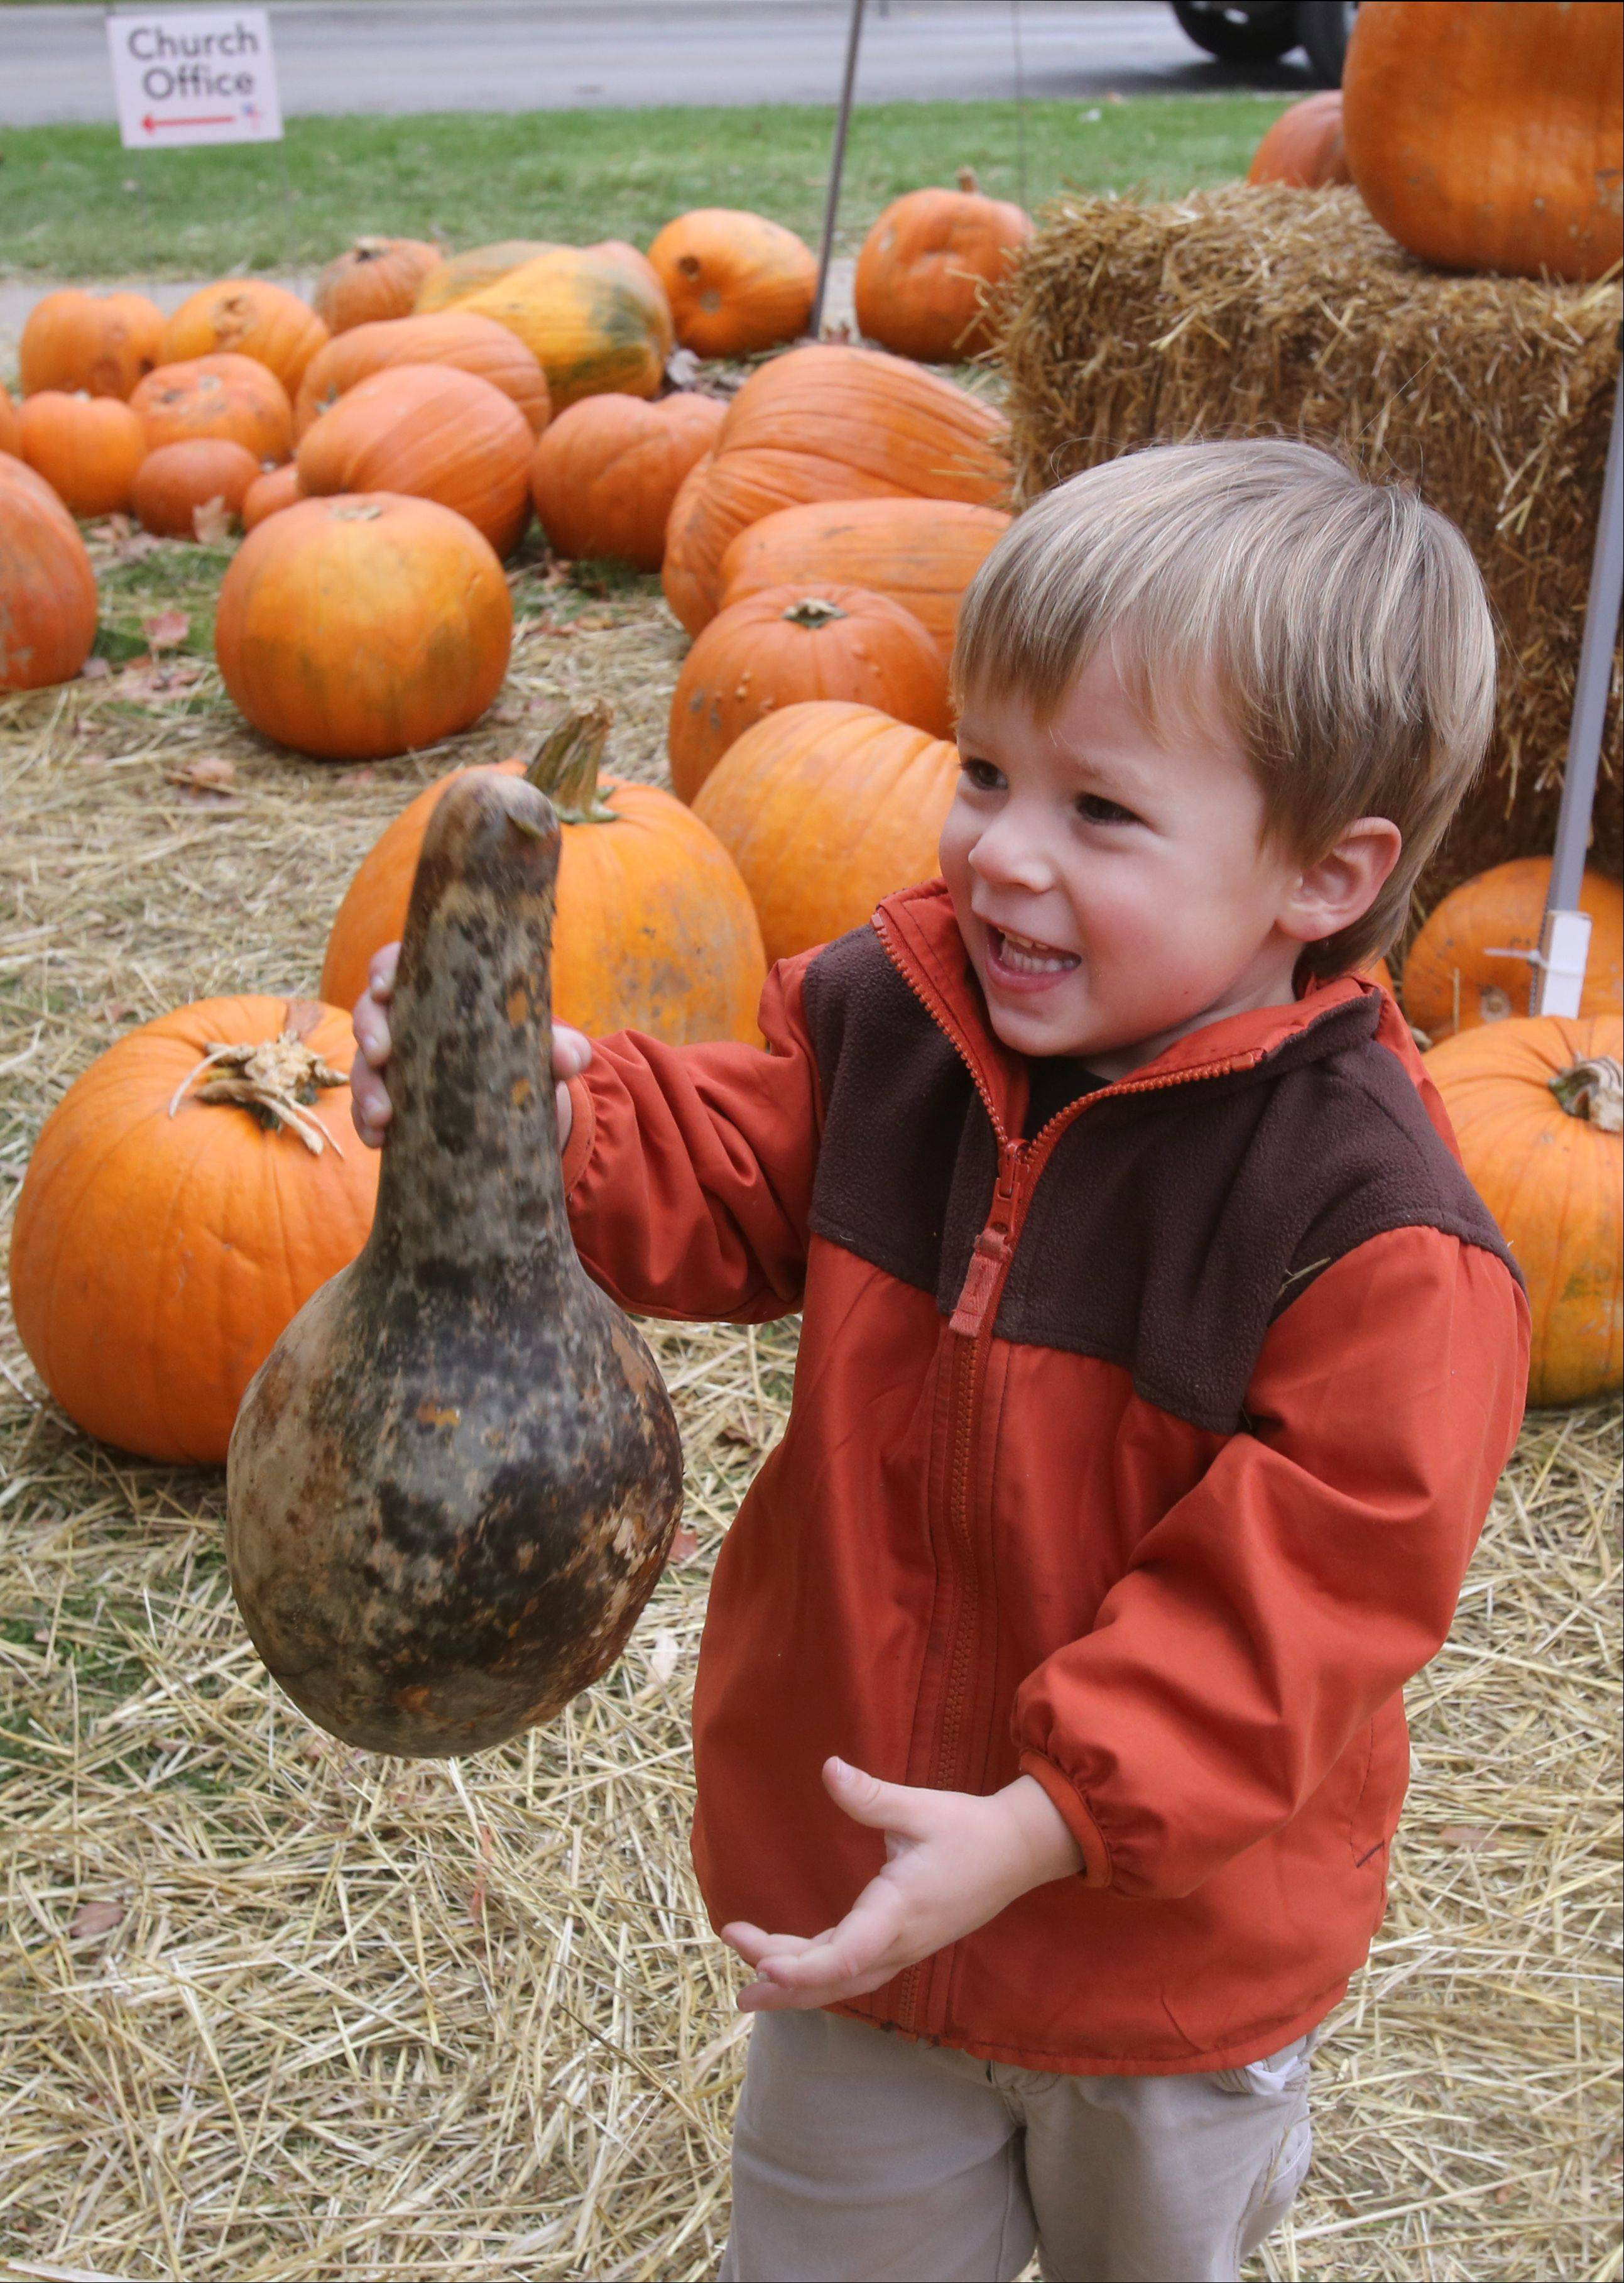 St. Mark's Episcopal Church preschooler Soren Alcorn plays in a pumpkin patch on the church's grounds in Glen Ellyn. The annual pumpkin sale helps raise money to fight homelessness.